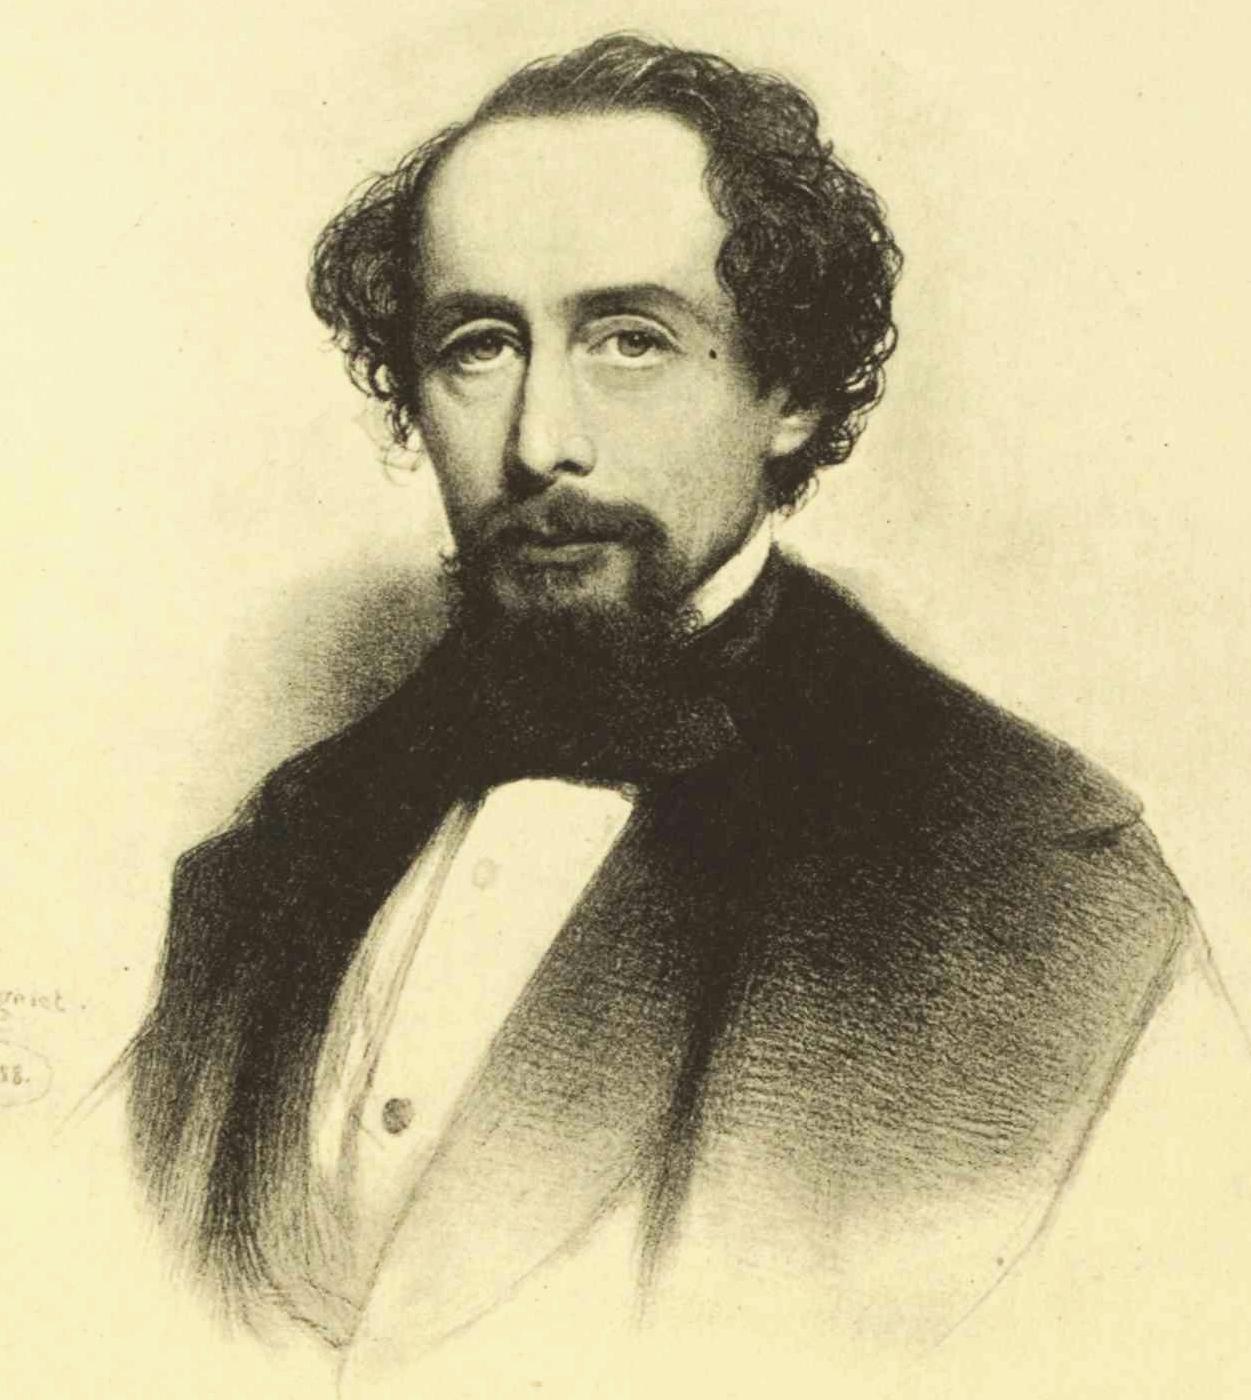 charles dickens create his characters essay Essay charles dicken's novels: literary criticism something about charles dickens and his ability to take his reader to unbelievable places with his imaginative powers allows him the honor of being the most popular english novelist of the 19th century.